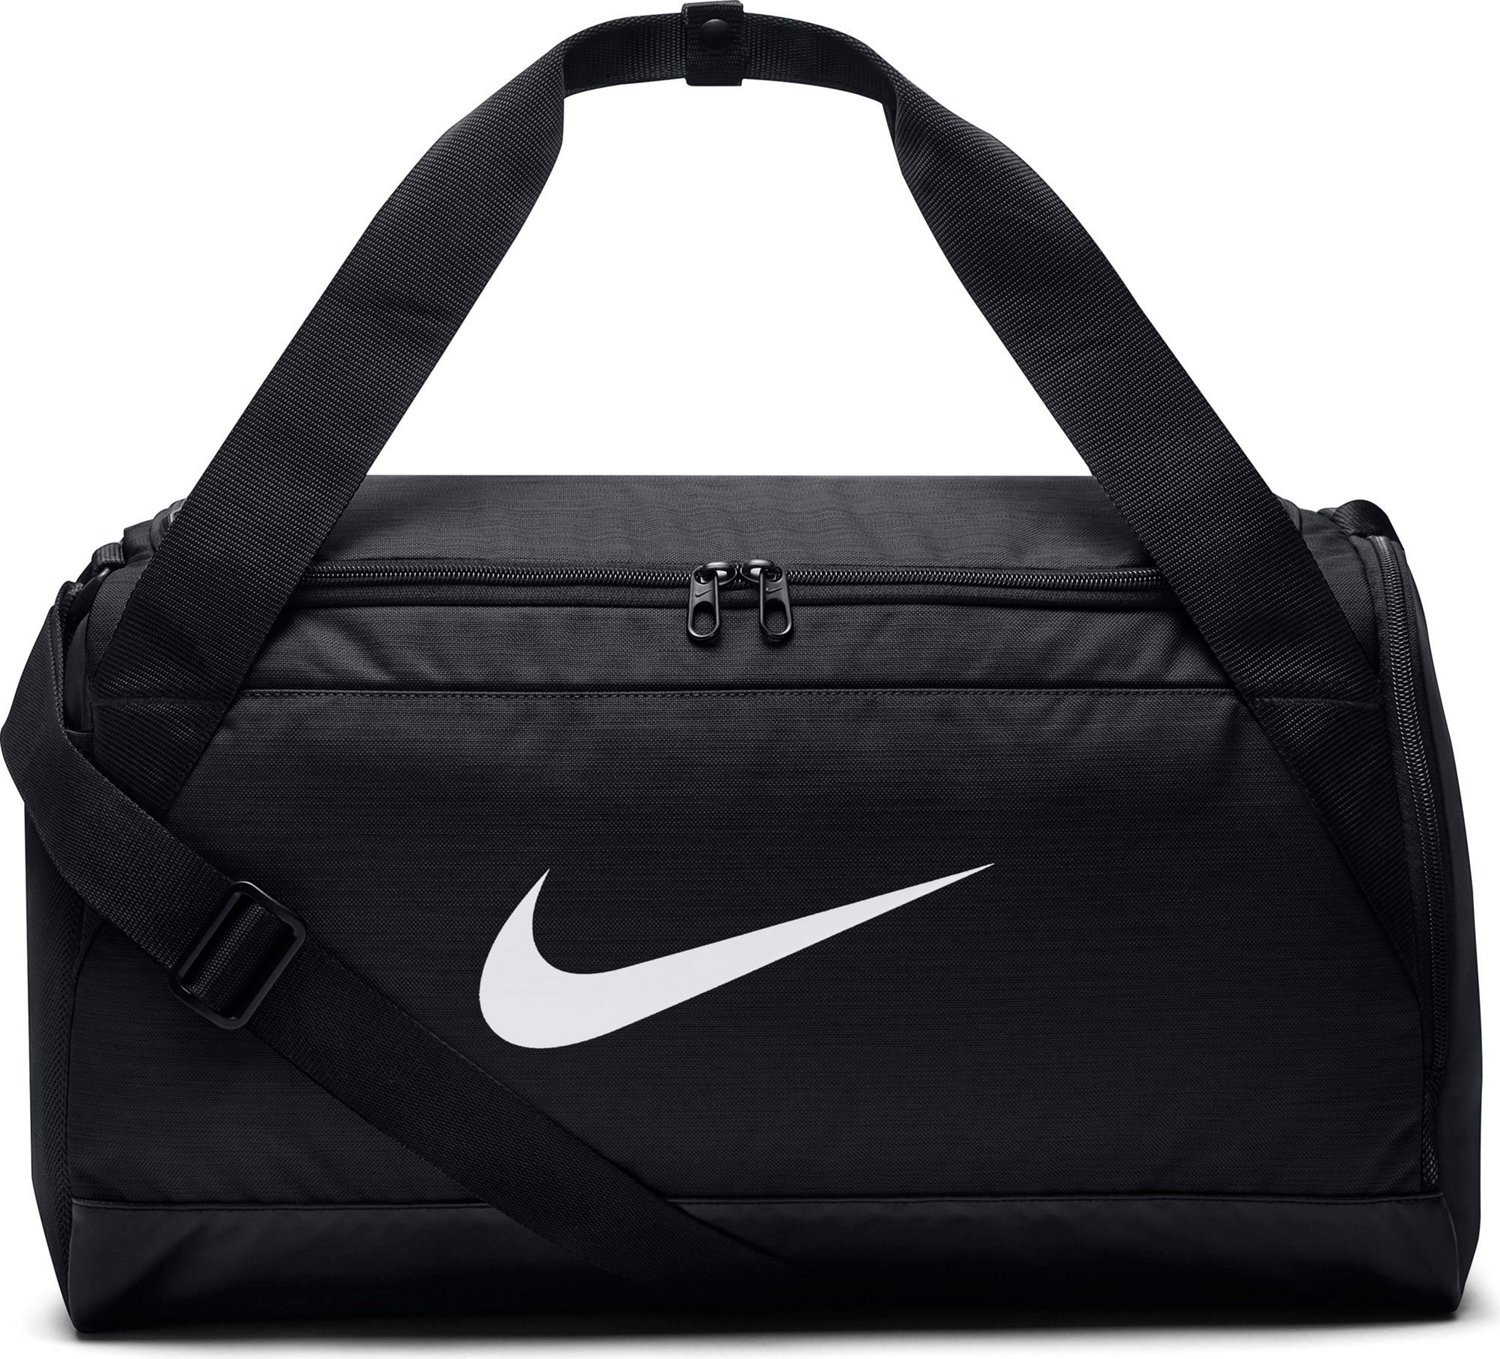 a29a081405 Display product reviews for Nike Brasilia Small Duffel Bag